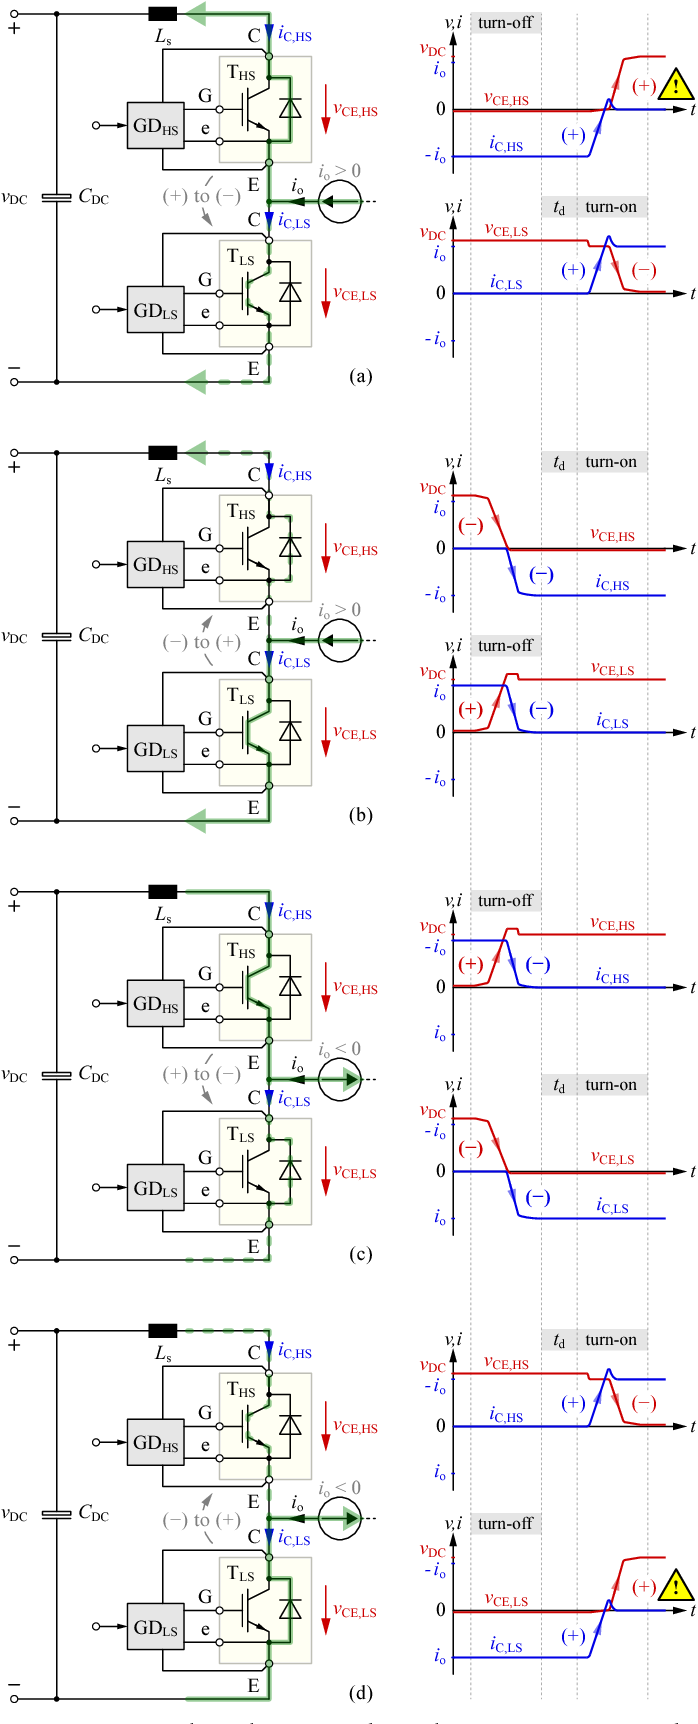 Closed Loop Di Dtdv Dt Control And Dead Time Minimization Of Igbts Figure 9 Switching Circuit For Igbt With Clamped Inductive Load In Bridge Leg Configuration Semantic Scholar